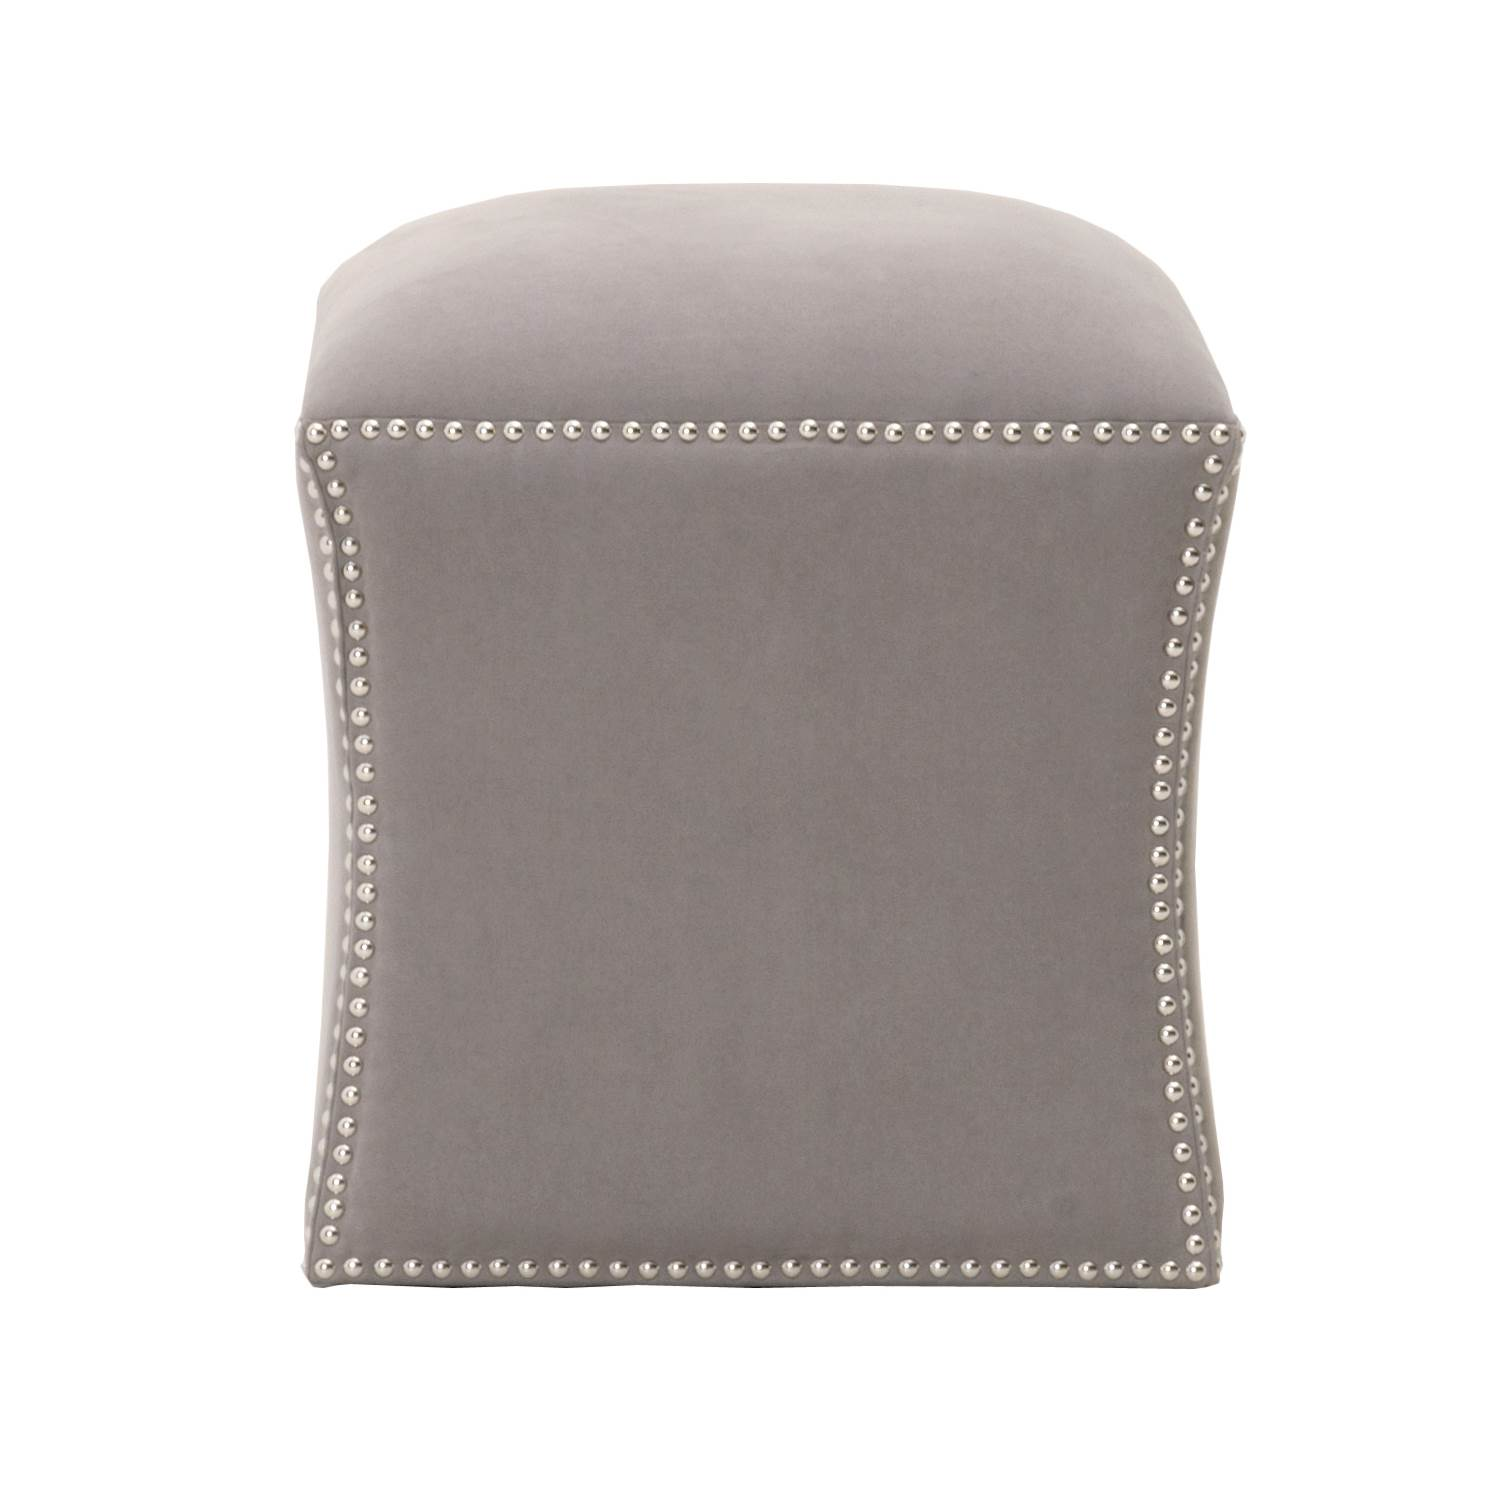 York Square Footstool - Ash - 1